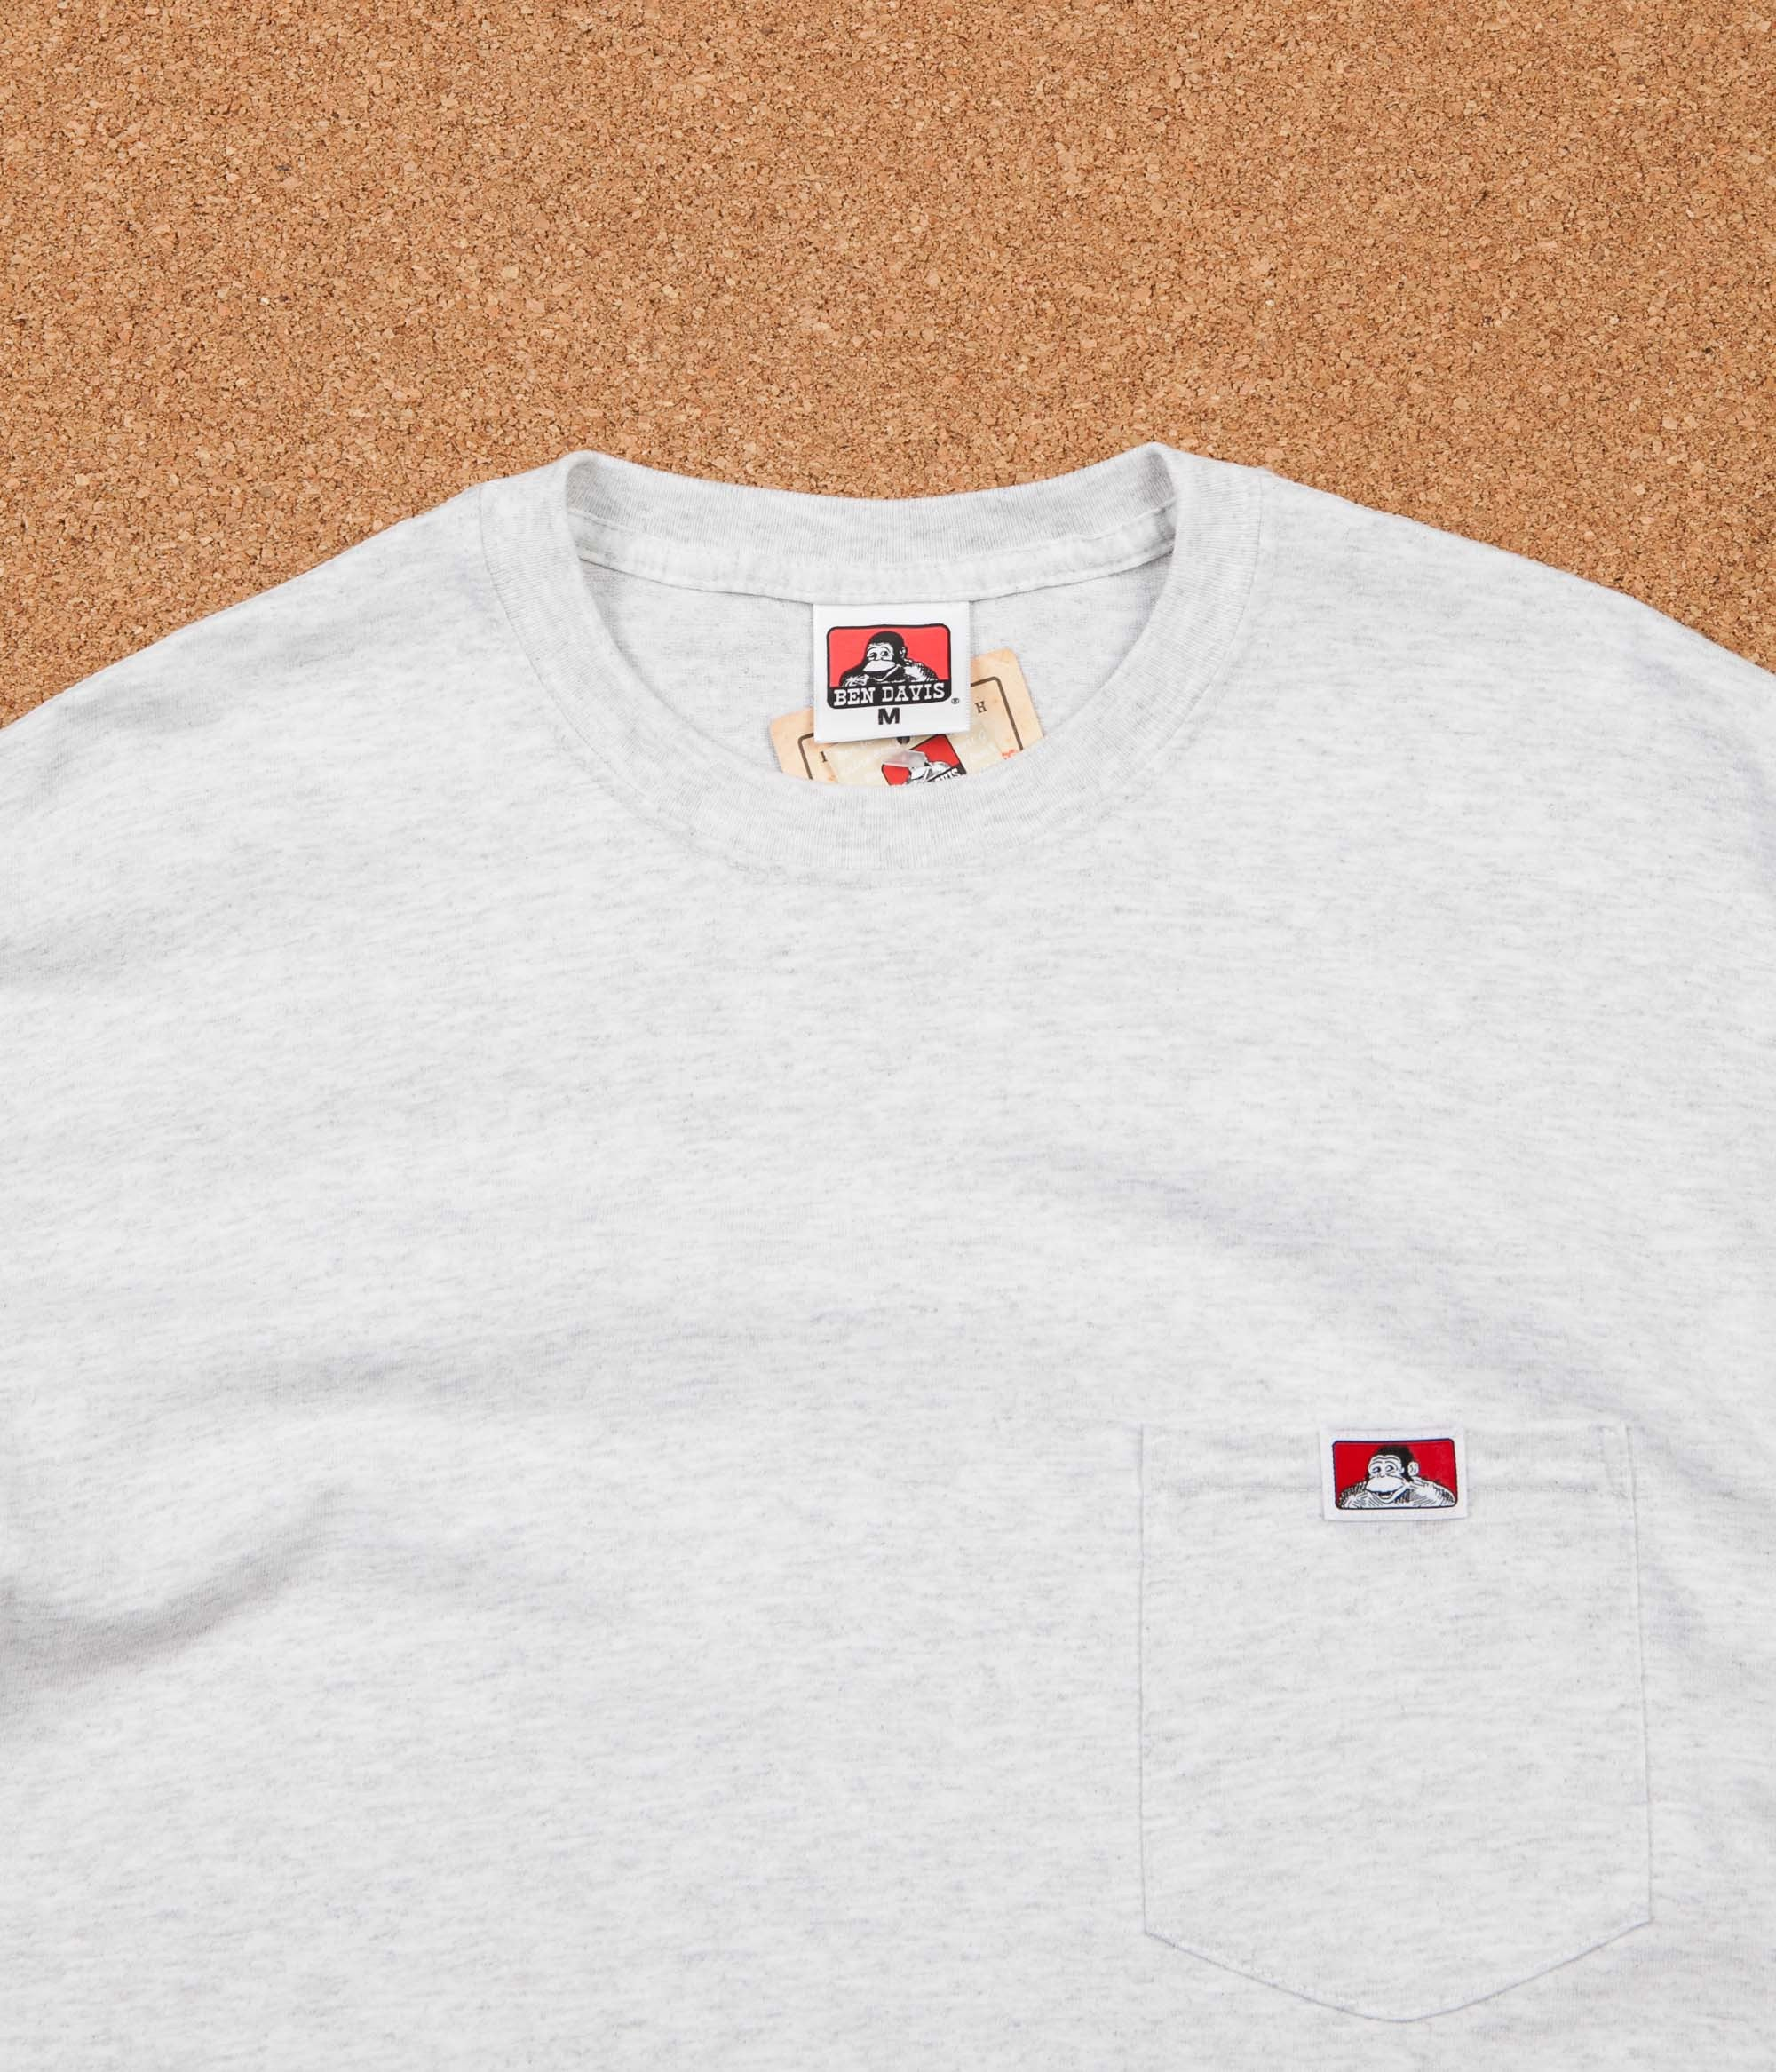 Ben Davis Pocket T-shirt - Ash Grey